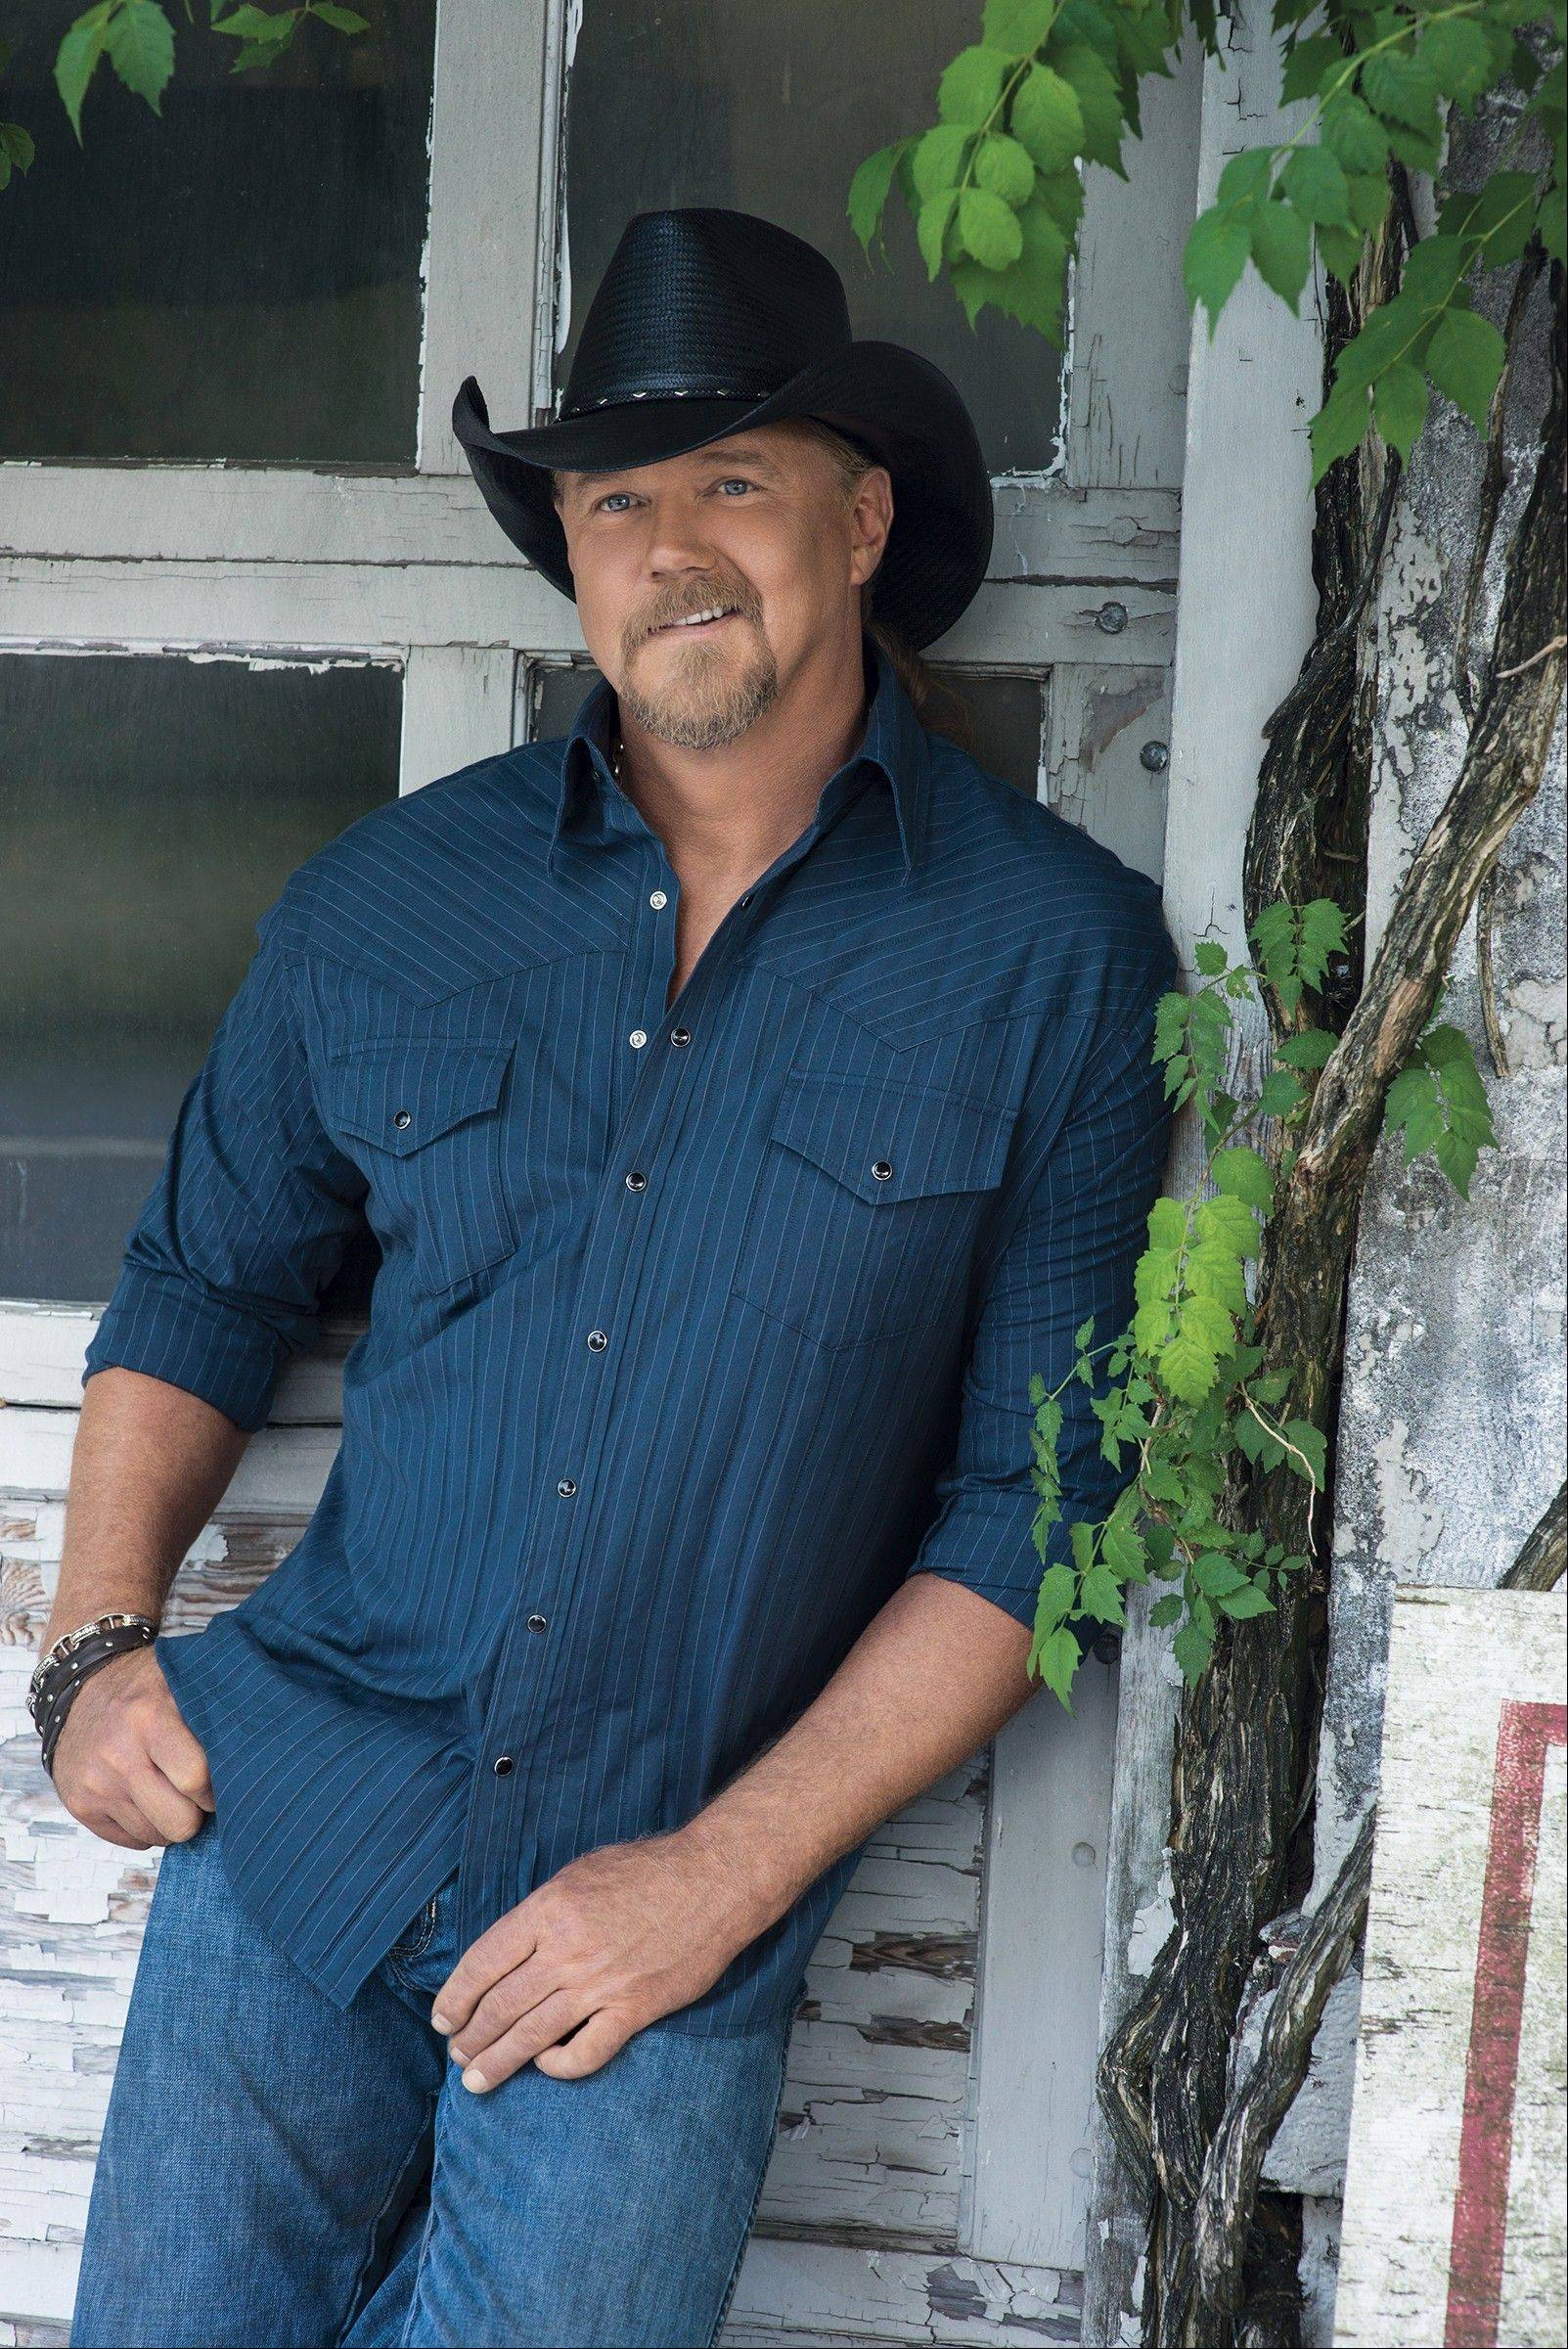 Trace Adkins will appear at the RiverEdge Park in Aurora.